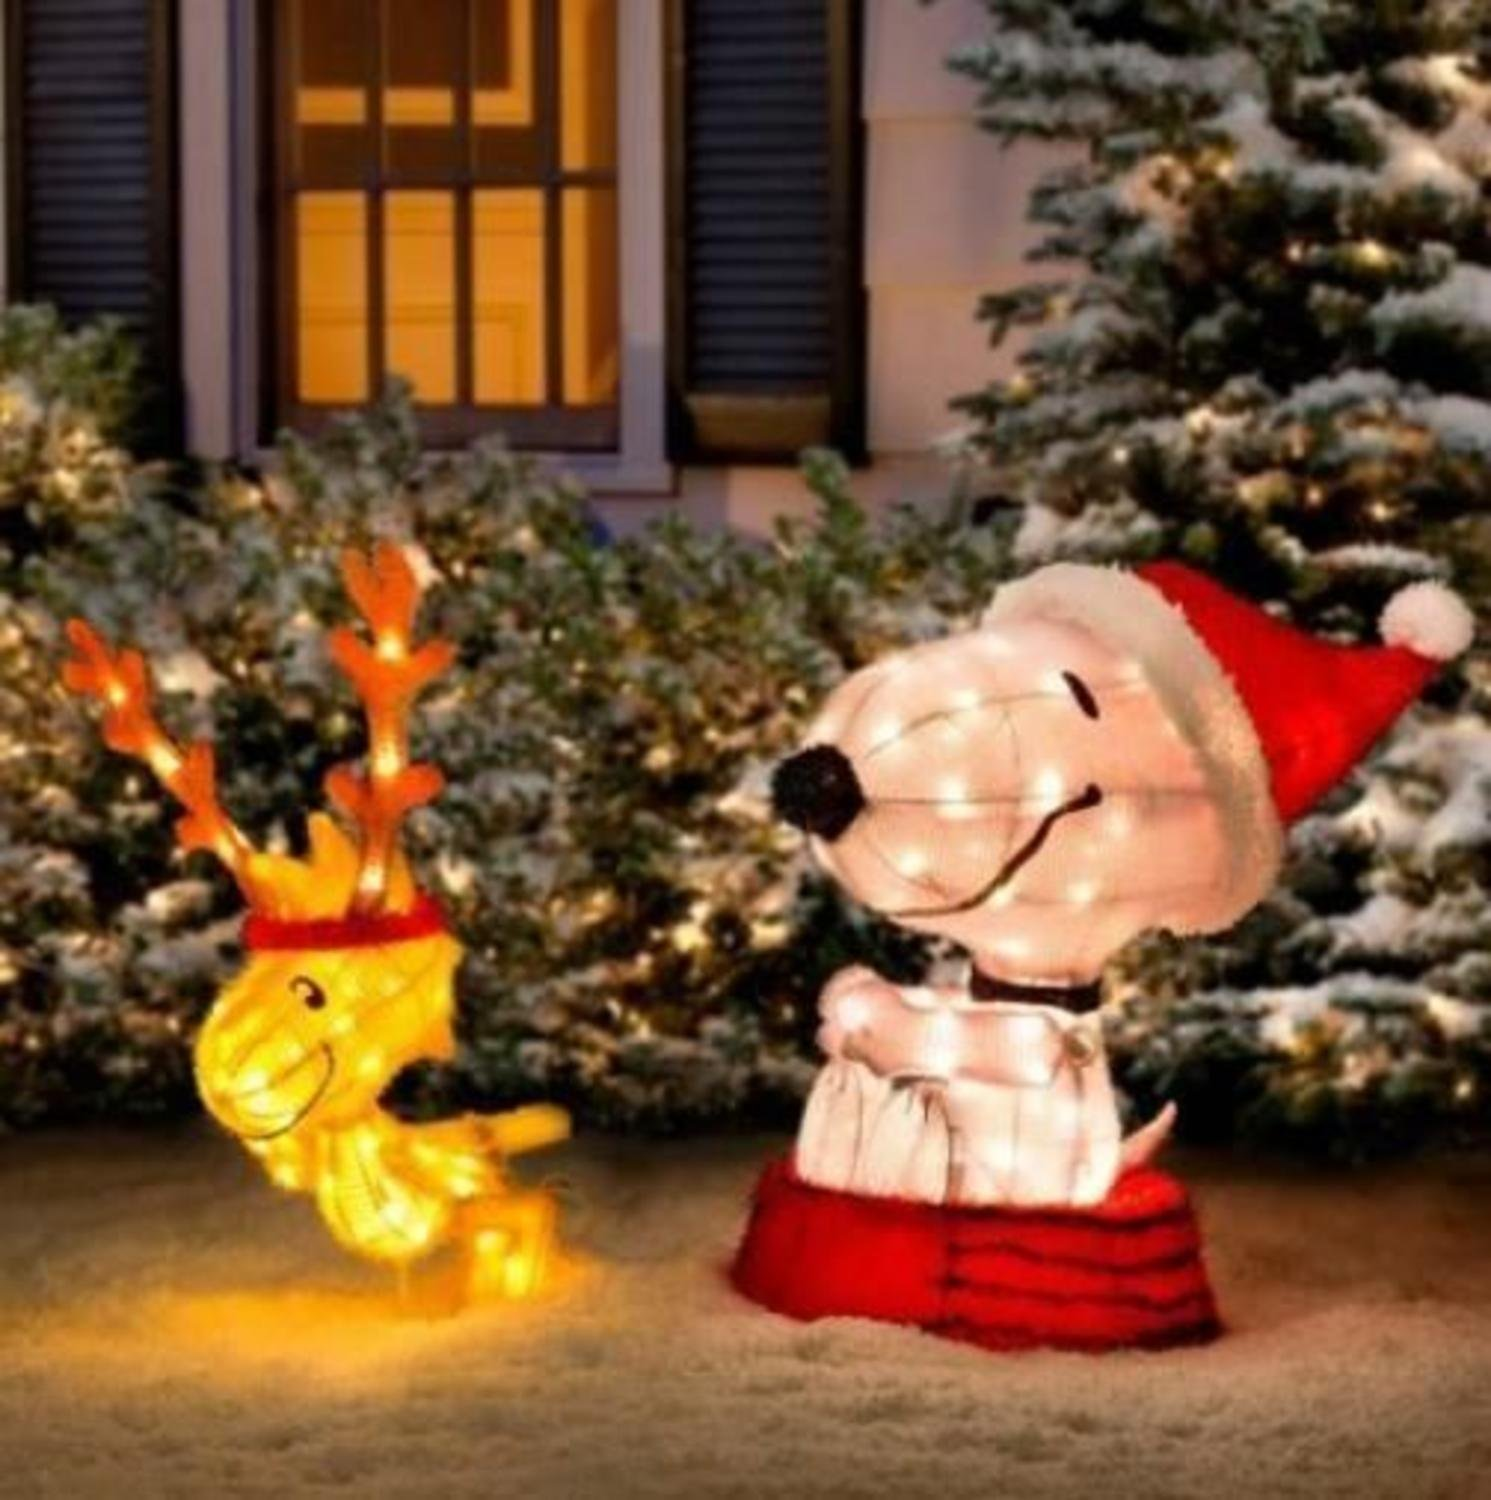 Snoopy outdoor christmas decorations - Amazon Com 34 Pre Lit Peanuts Soft Tinsel Snoopy With Woodstock Christmas Yard Art Decoration Clear Lights Patio Lawn Garden